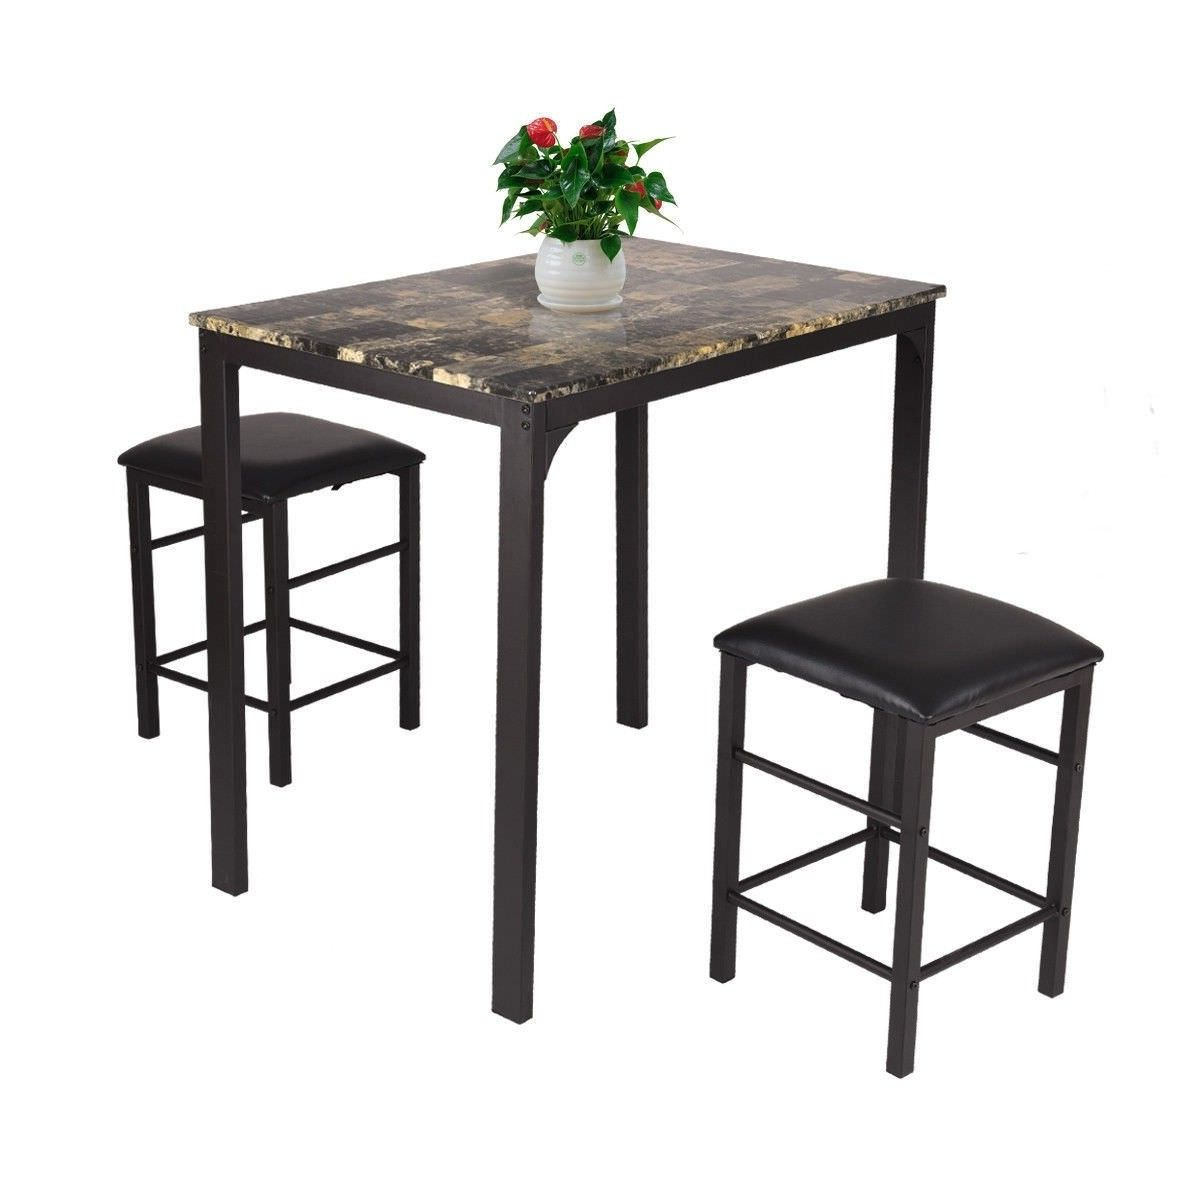 3 Piece Counter Height Dining Set Faux Marble Table Pertaining To Famous Sundberg 5 Piece Solid Wood Dining Sets (View 2 of 25)